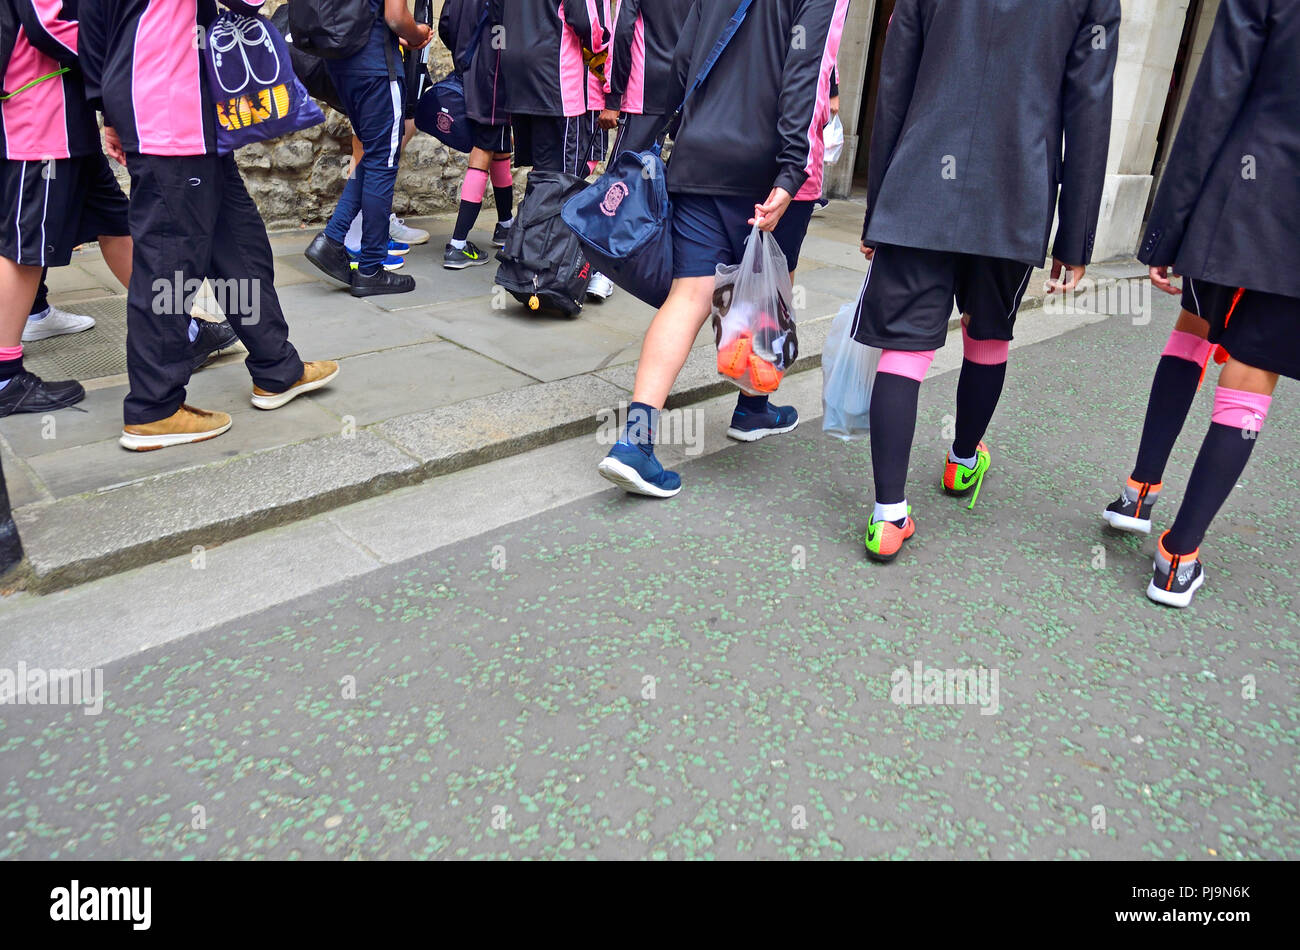 Schoolboys going to a sports lesson in uniform sports kit - London, England, UK. Stock Photo